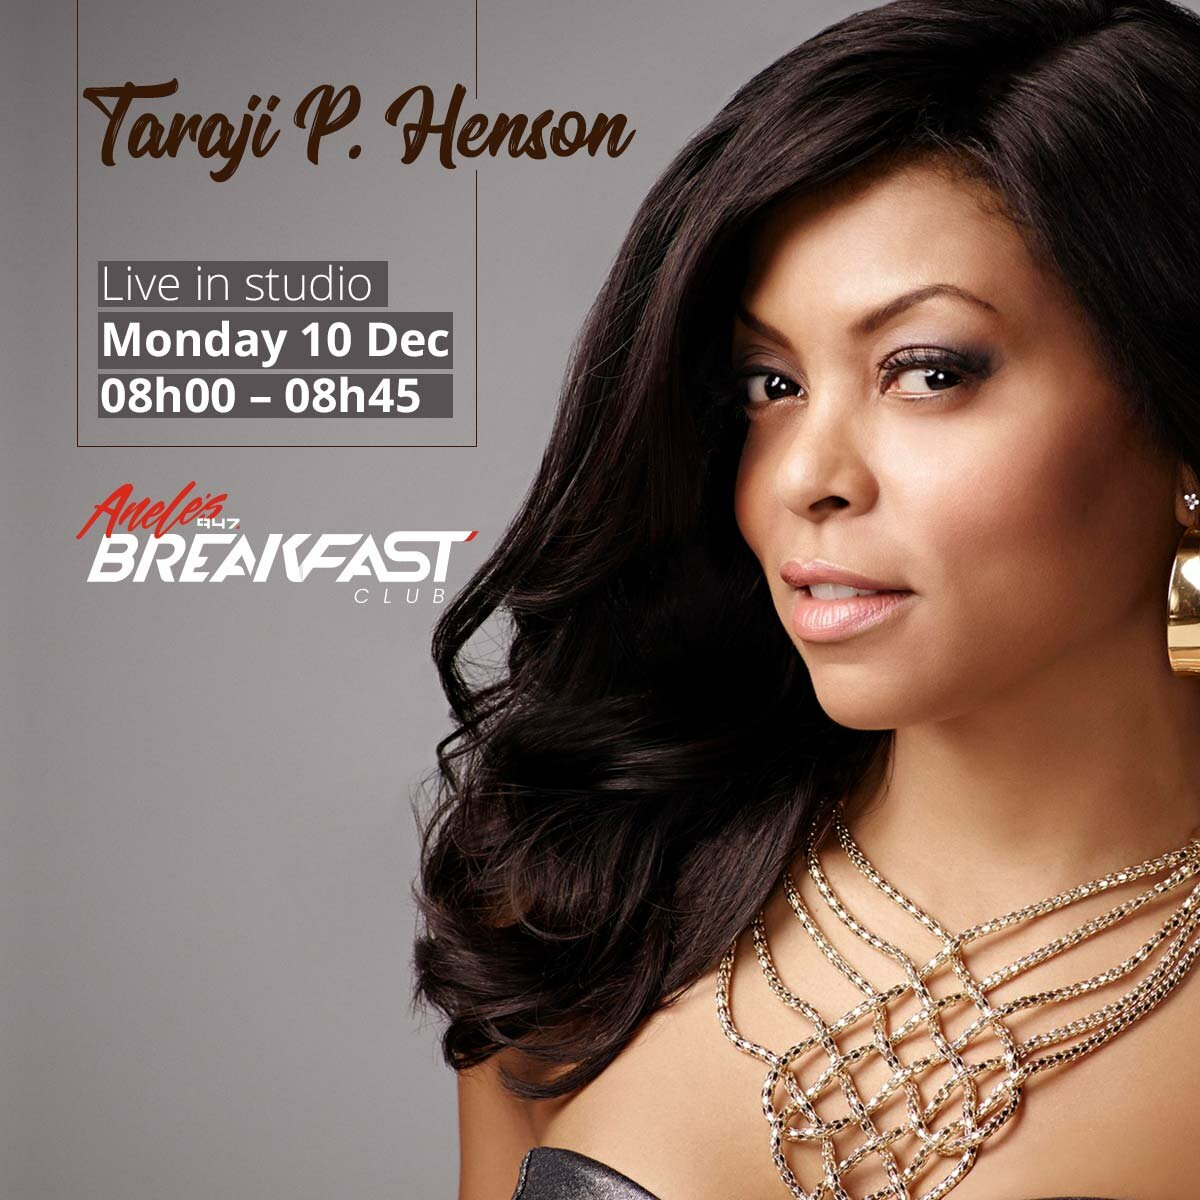 Empire's Cookie (Taraji P. Henson) caught up with Anele and the 947 Breakfast Club!